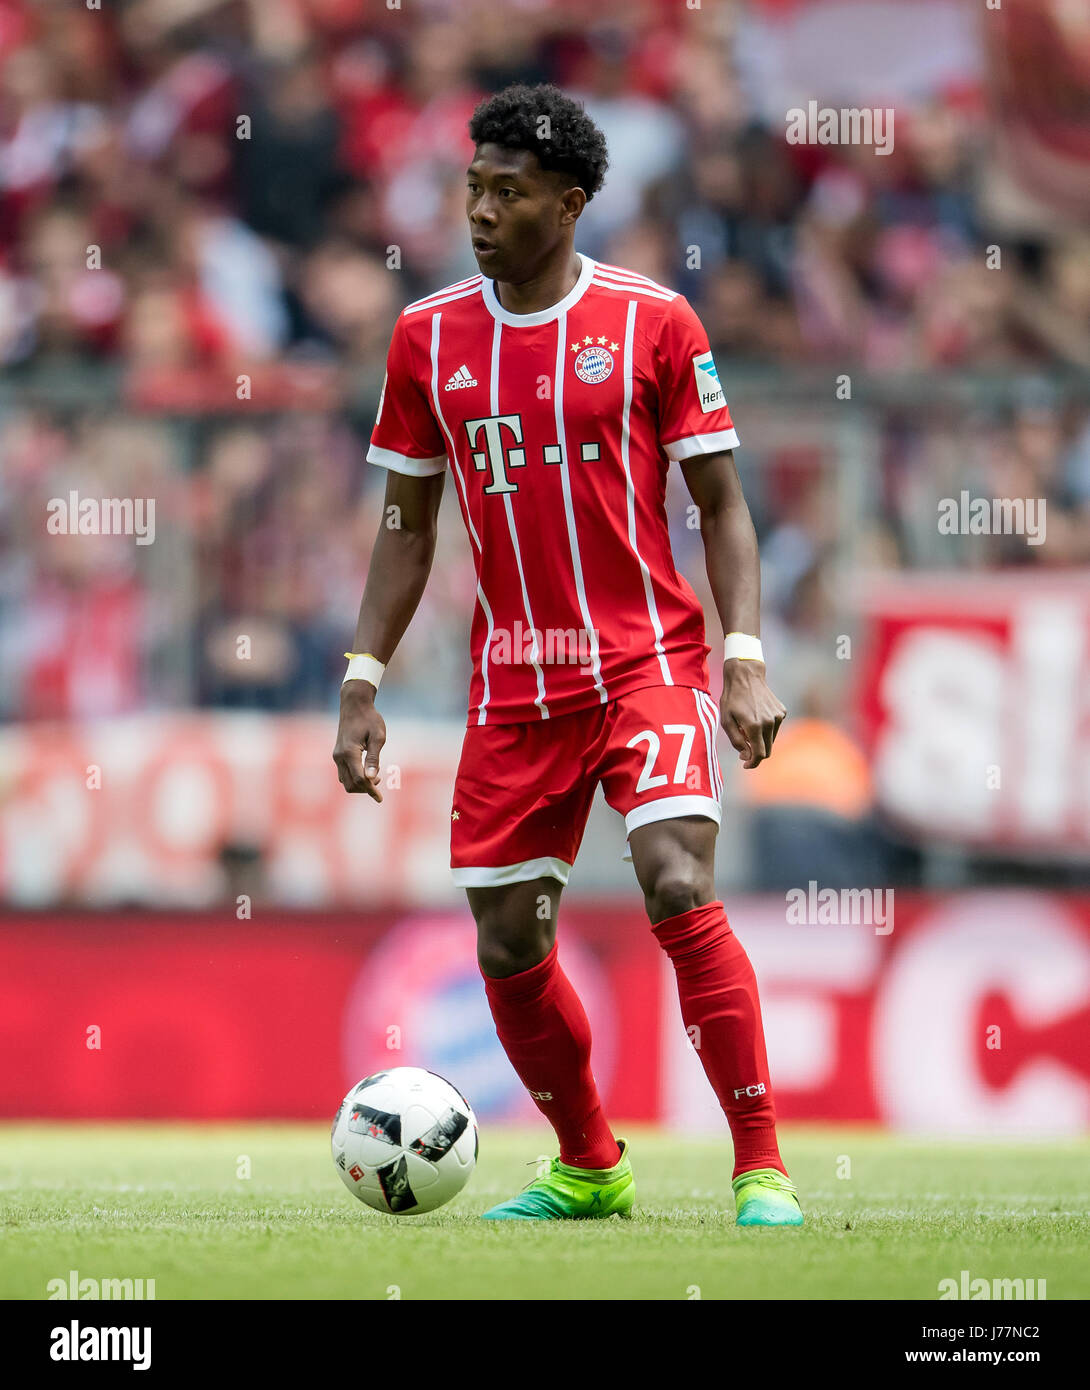 Munich s David Alaba on the ball during the German Bundesliga